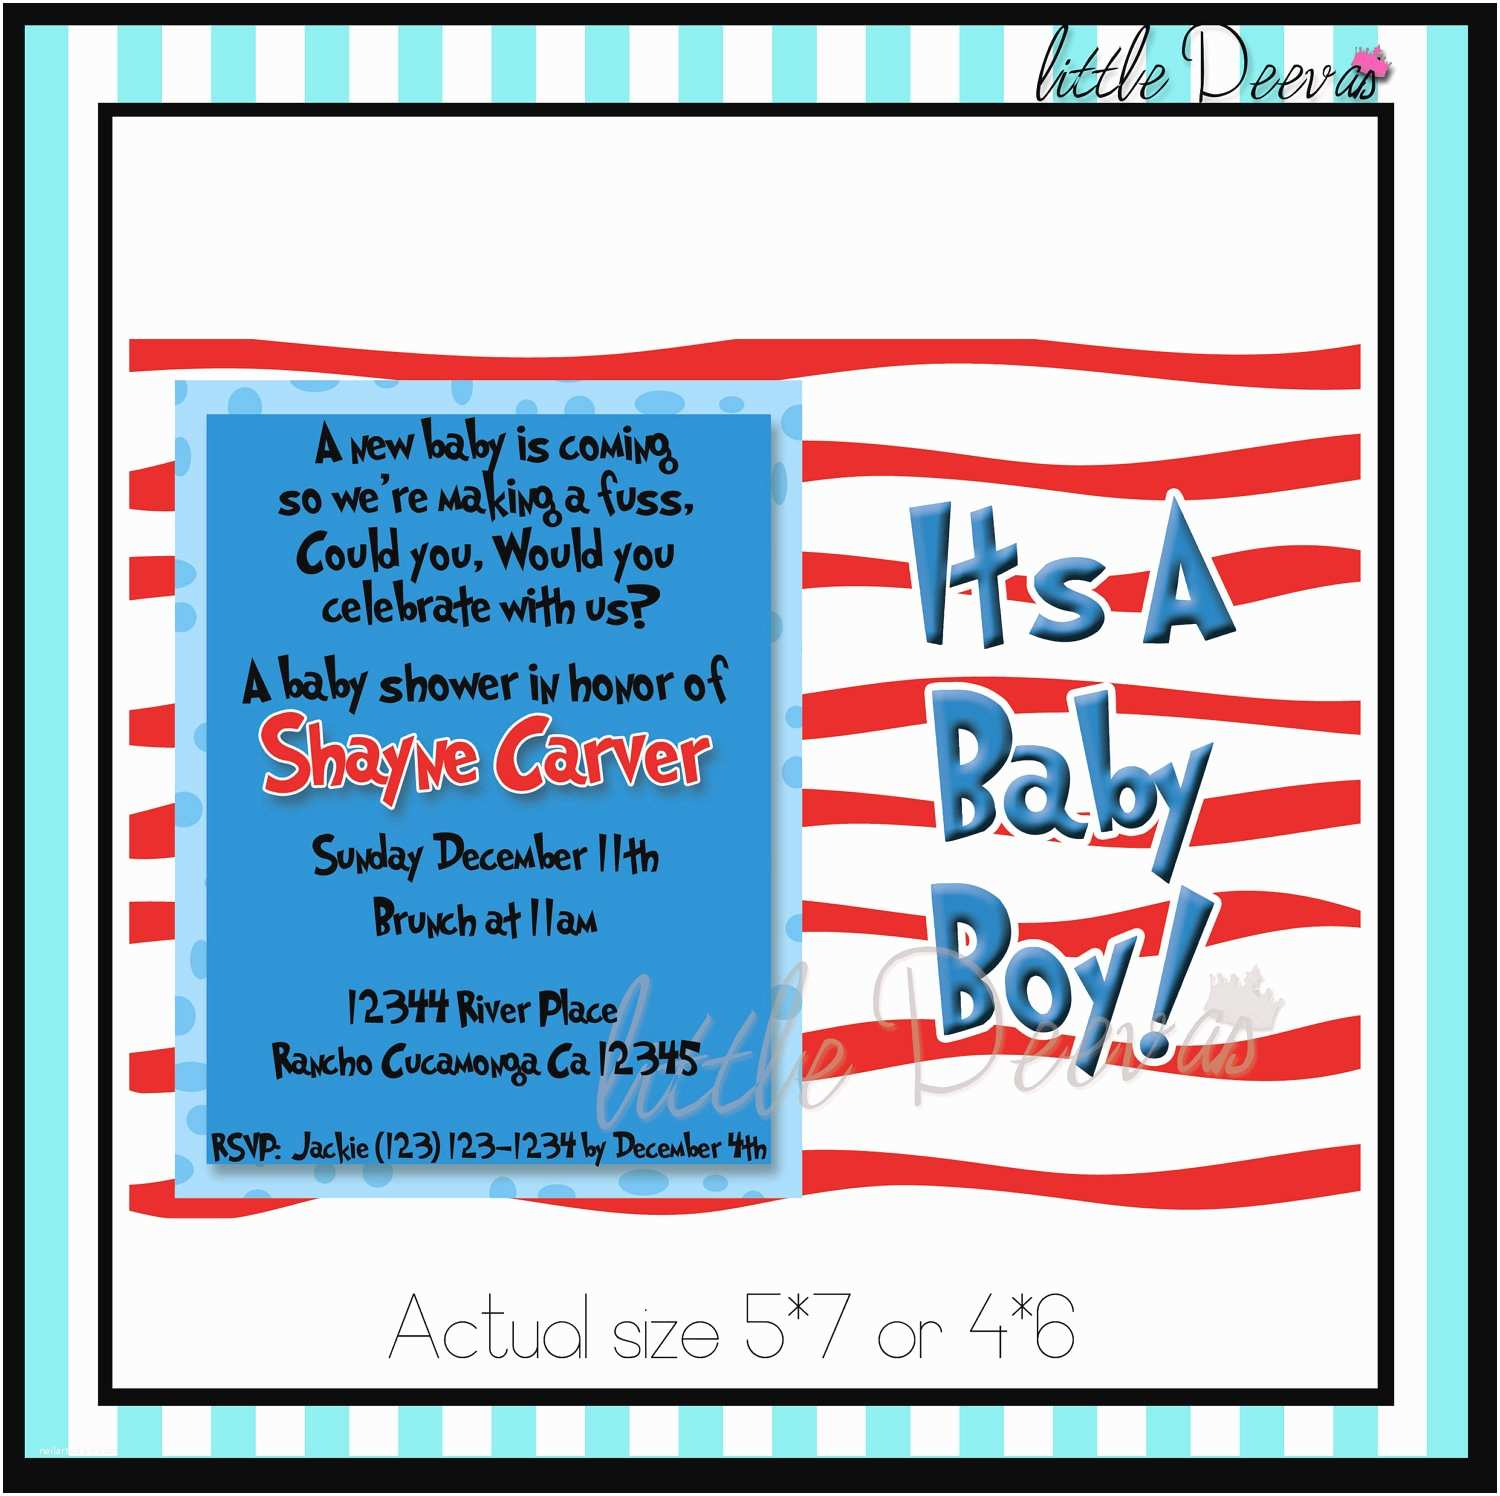 Cat In the Hat Baby Shower Invitations Items Similar to Cat In the Hat Baby Shower Invitation